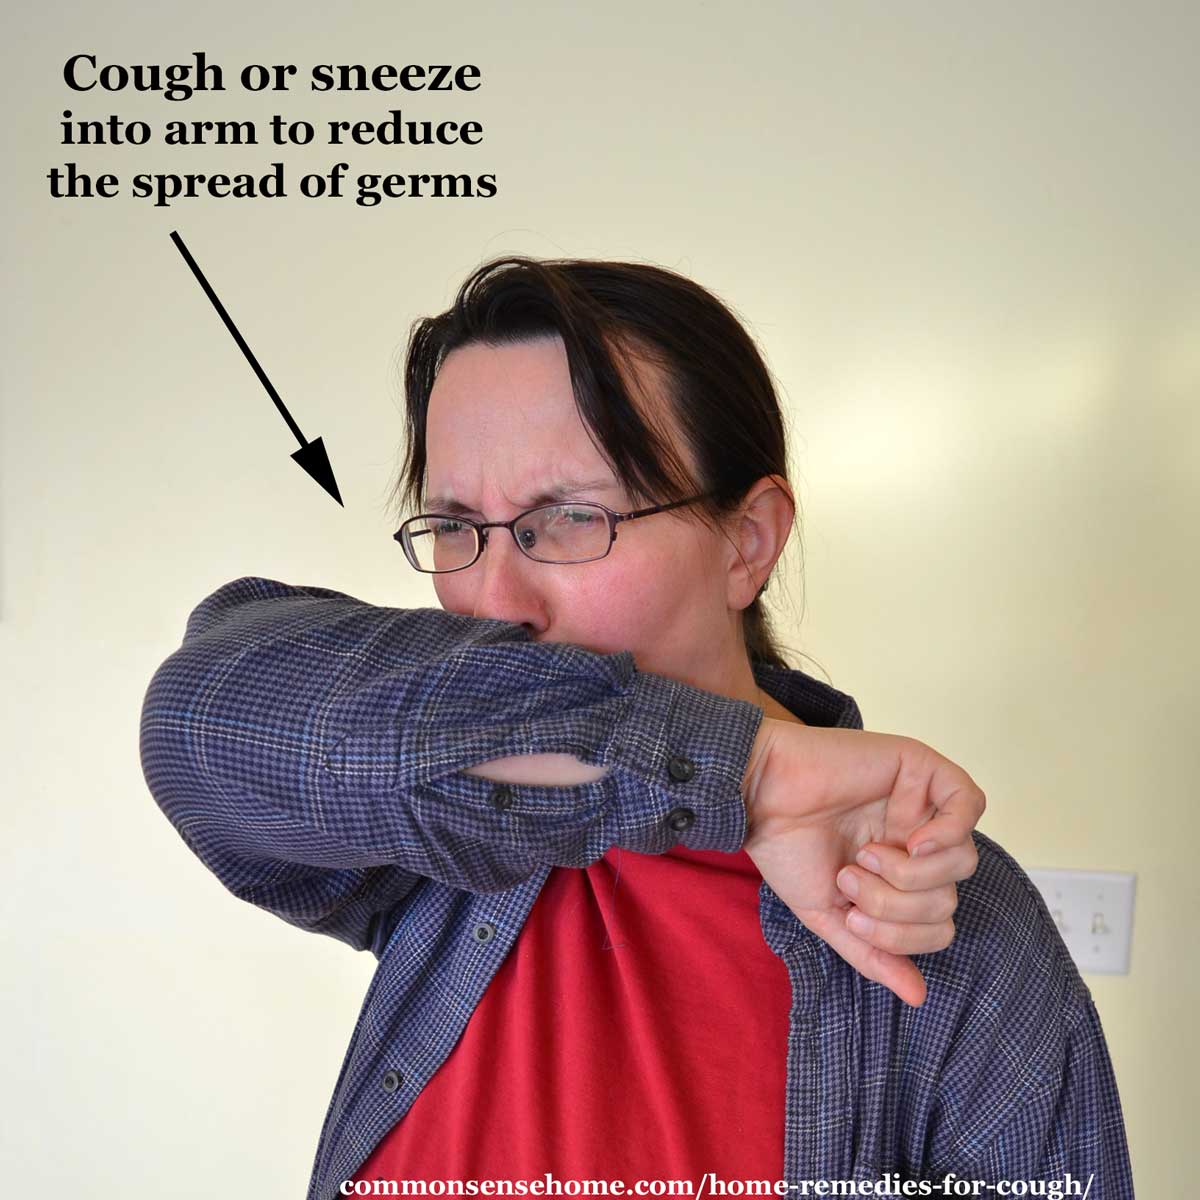 coughing into elbow to reduce the spread of germs